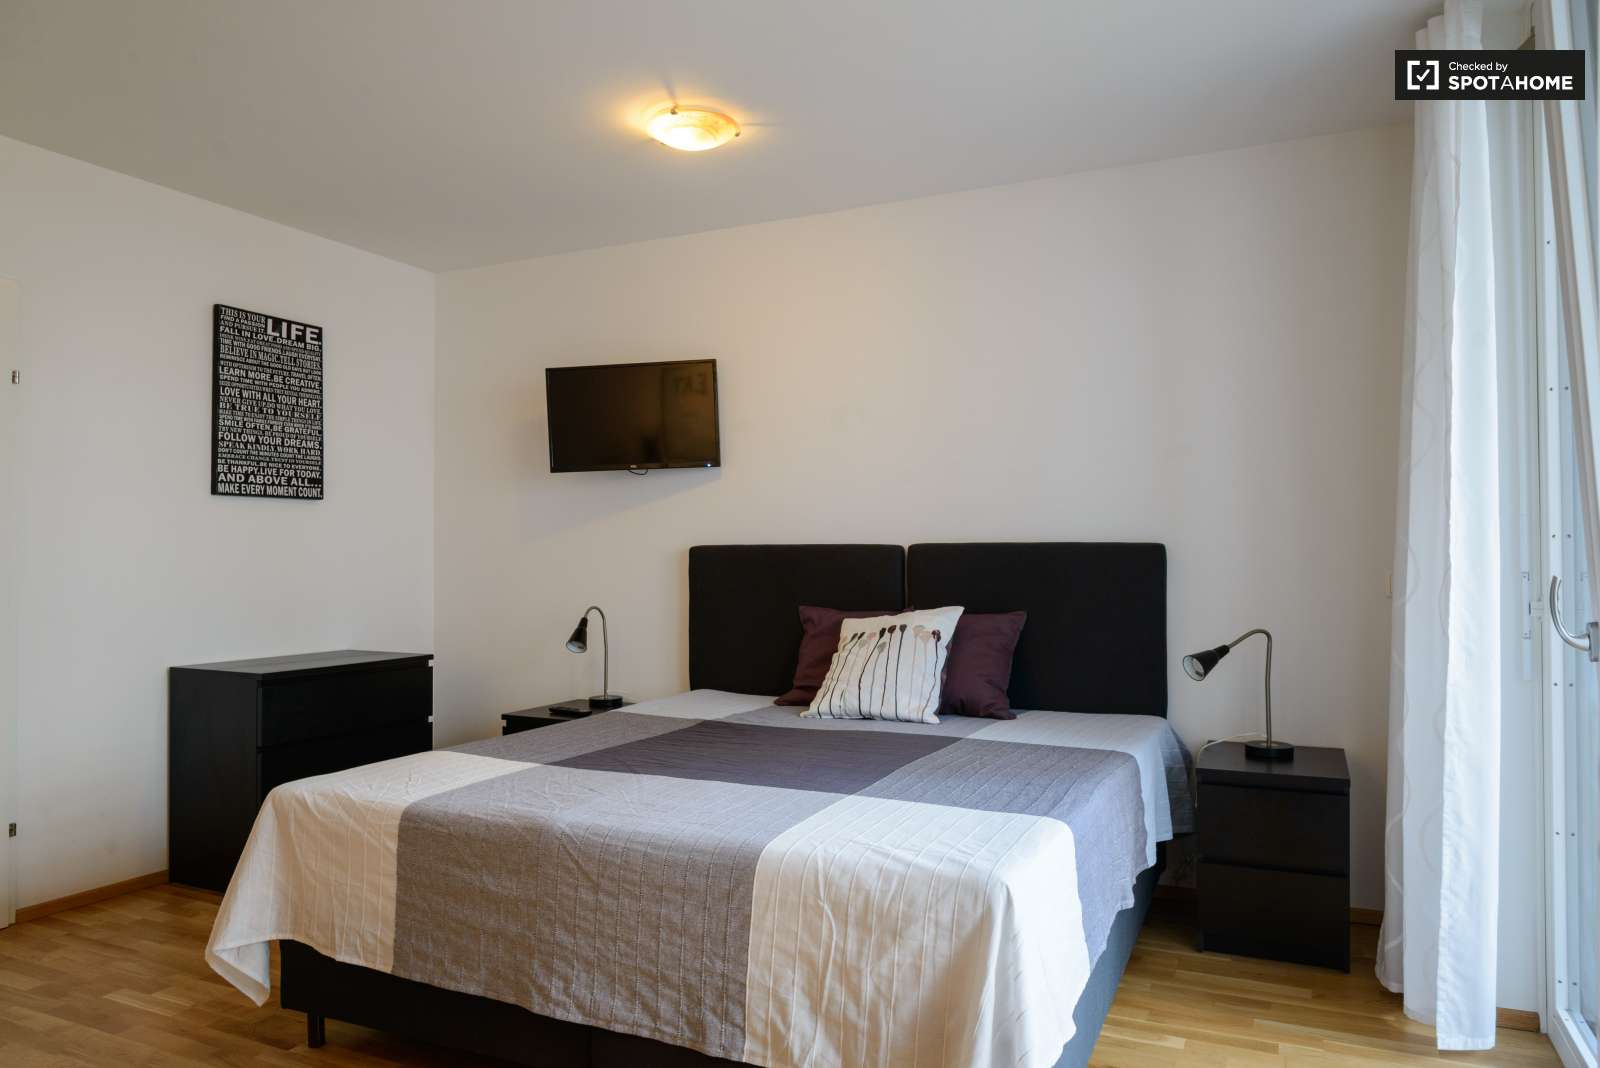 Bedroom Apartment For Rent In The District Vienna Spotahome